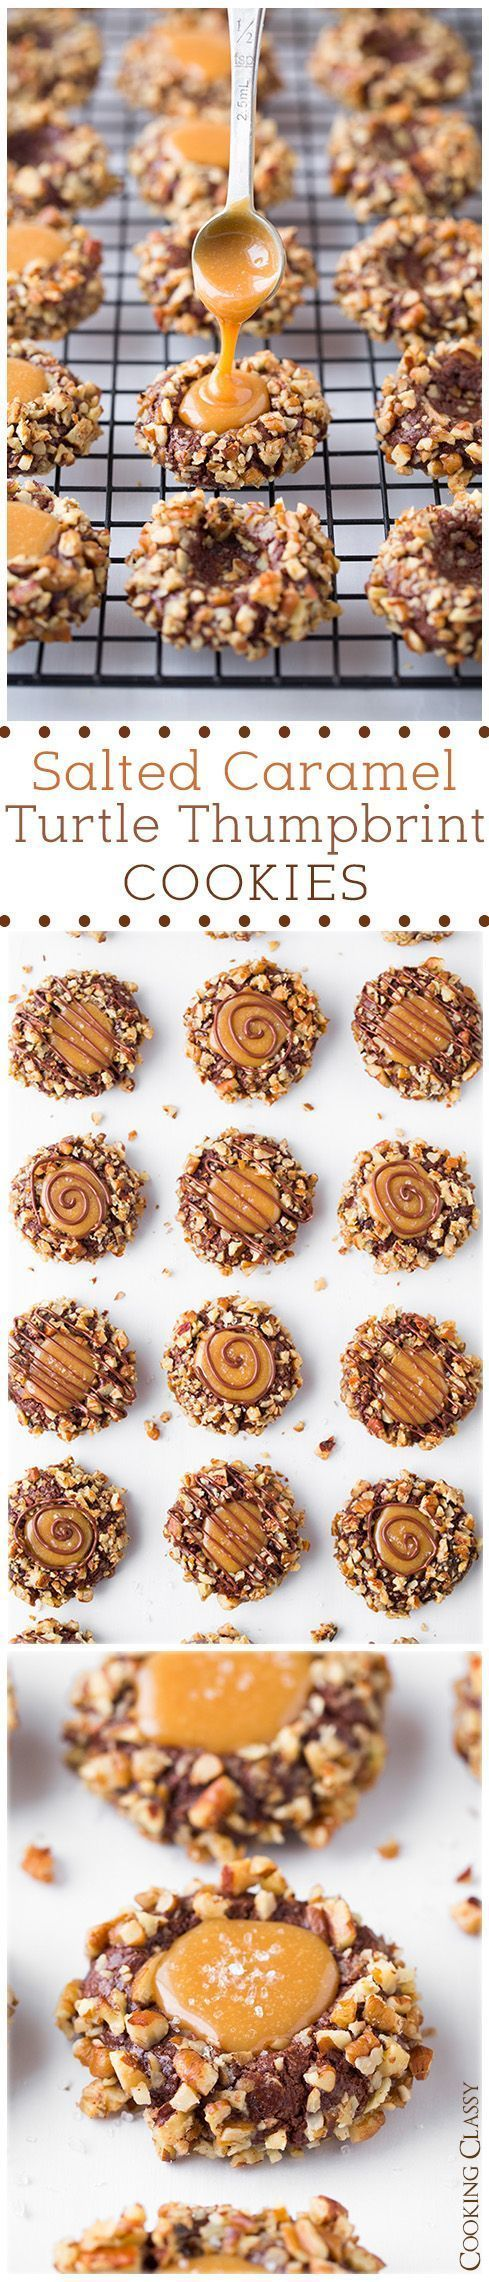 Salted Caramel Turtle Thumbprint Cookies Recipe / Buzz Inspired on imgfave